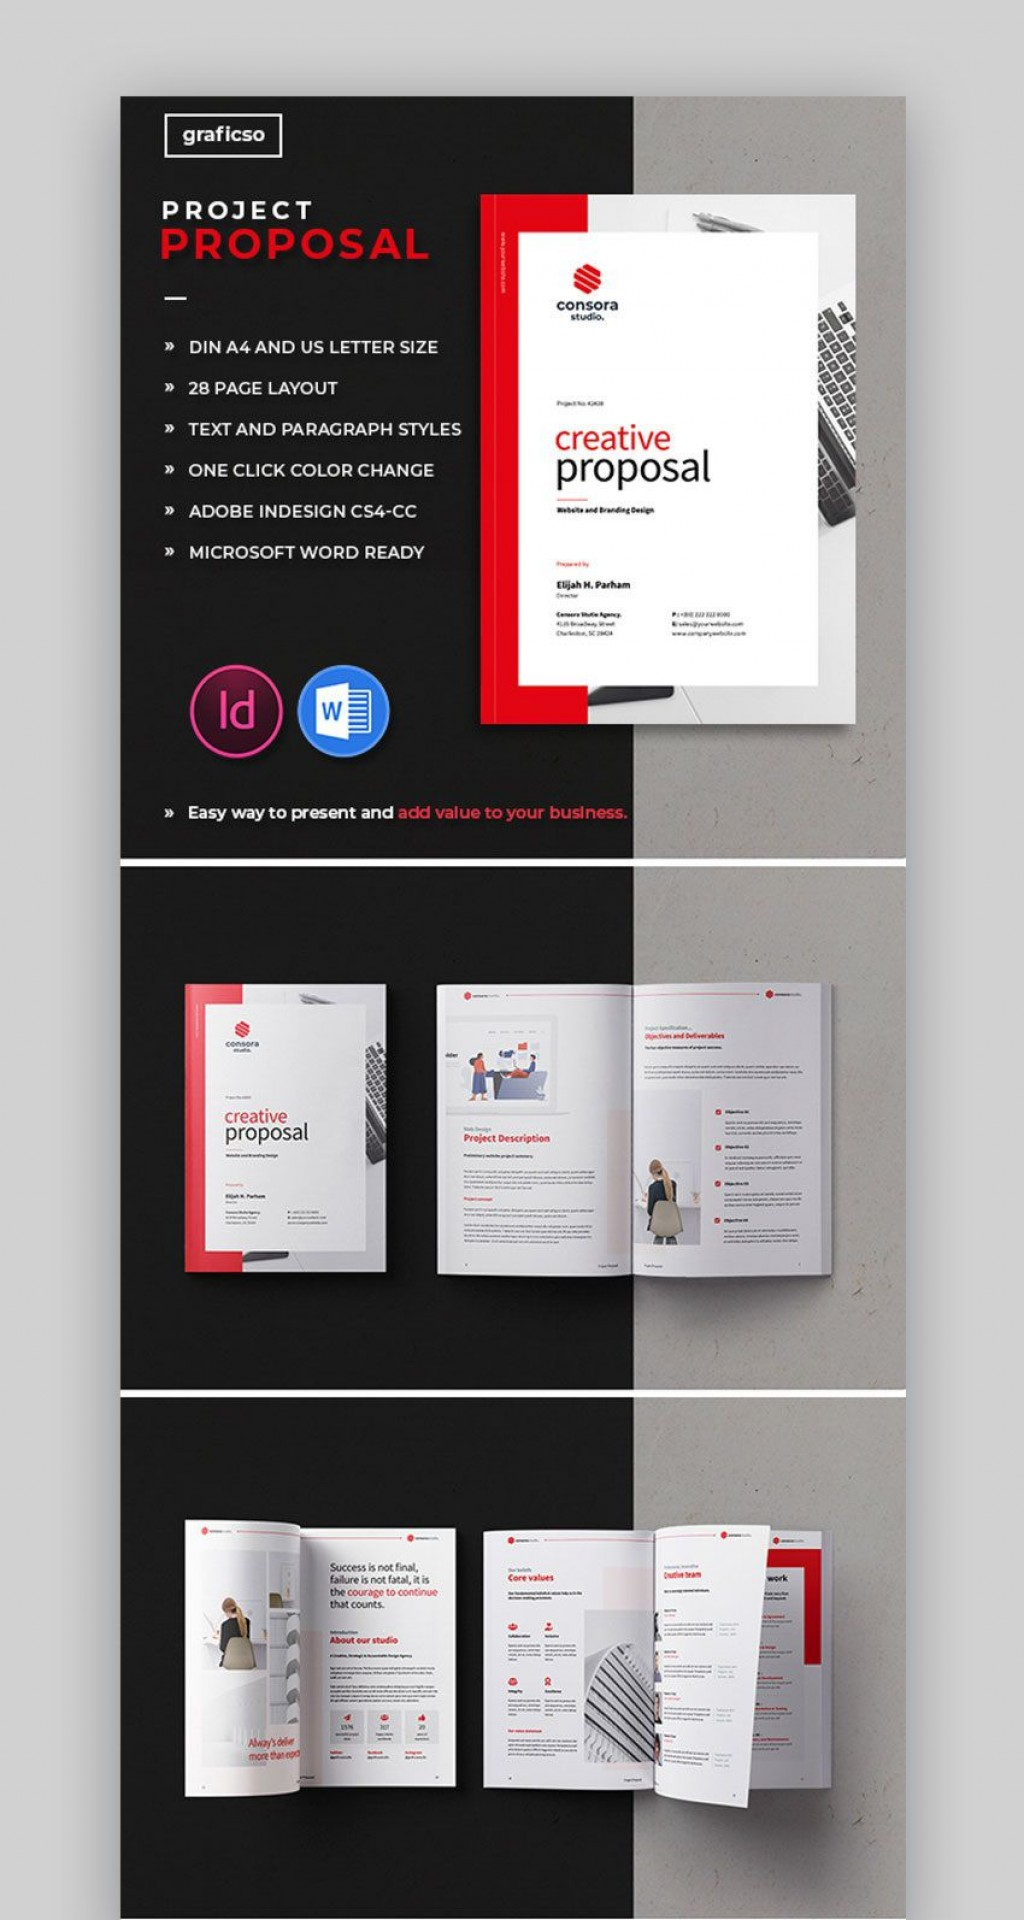 007 Frightening Graphic Design Proposal Template Word Large